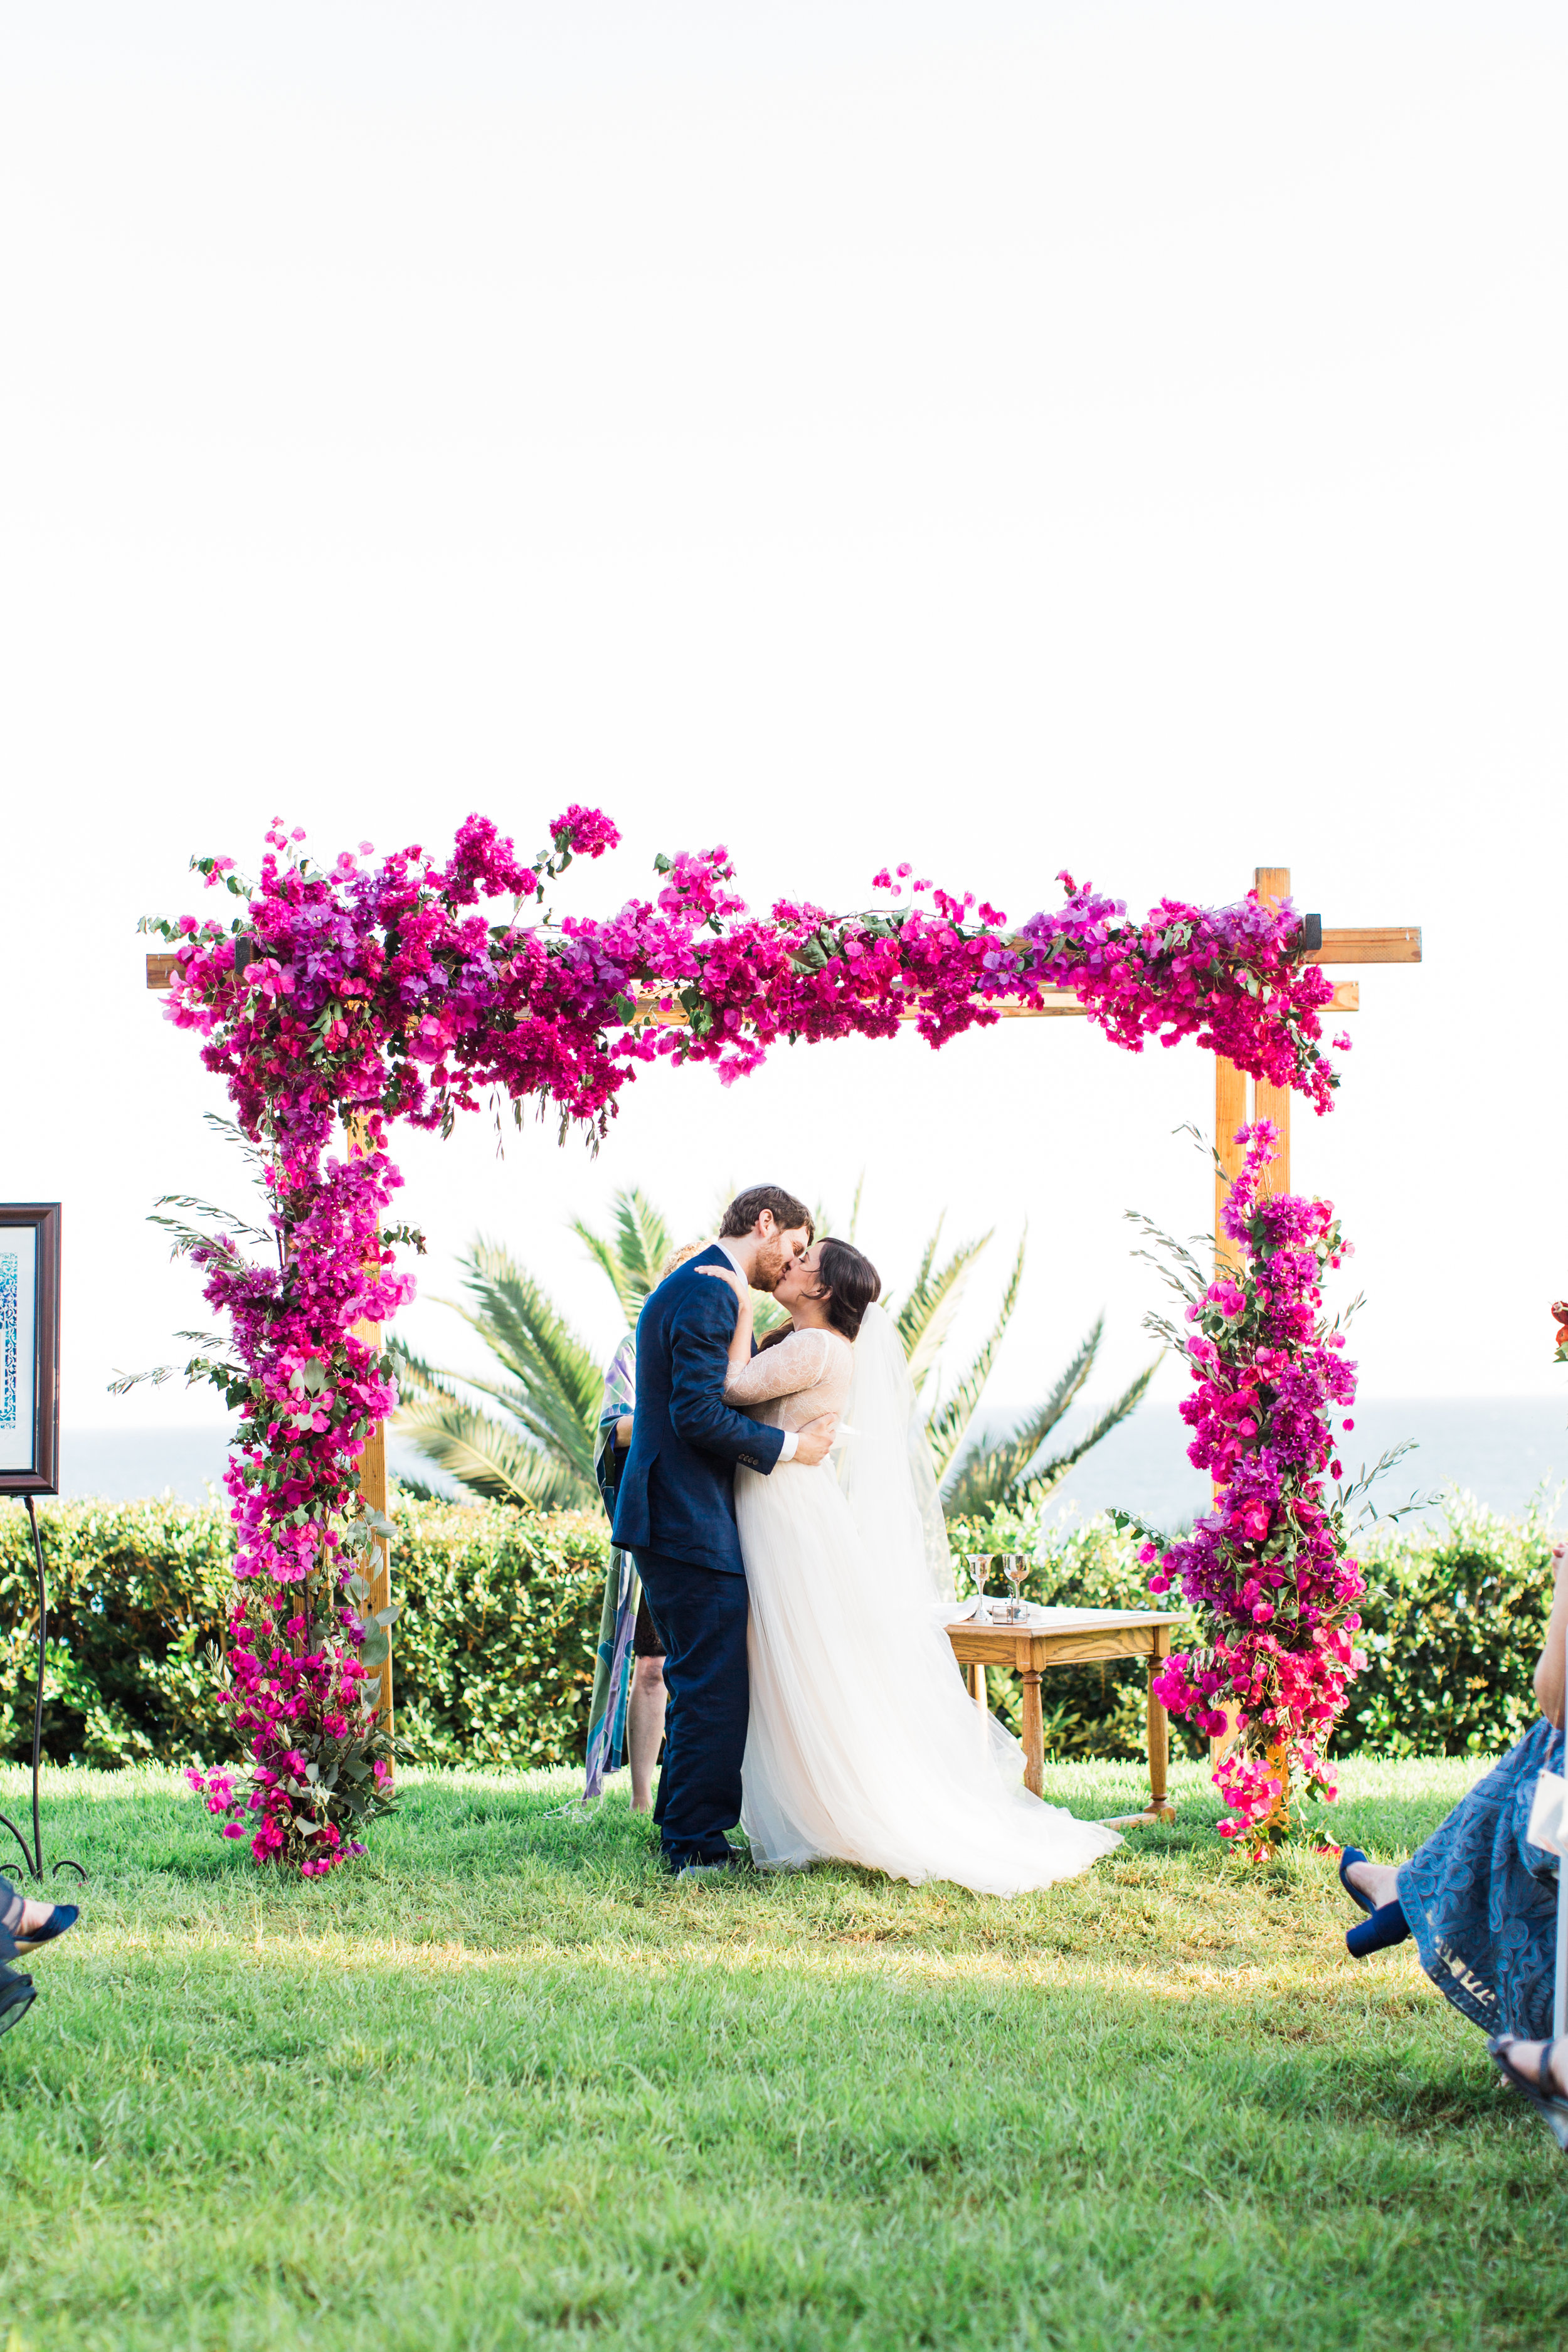 Rachael + David  // Photographer:  Laura Ford , Floral Designer: The Flower Lab